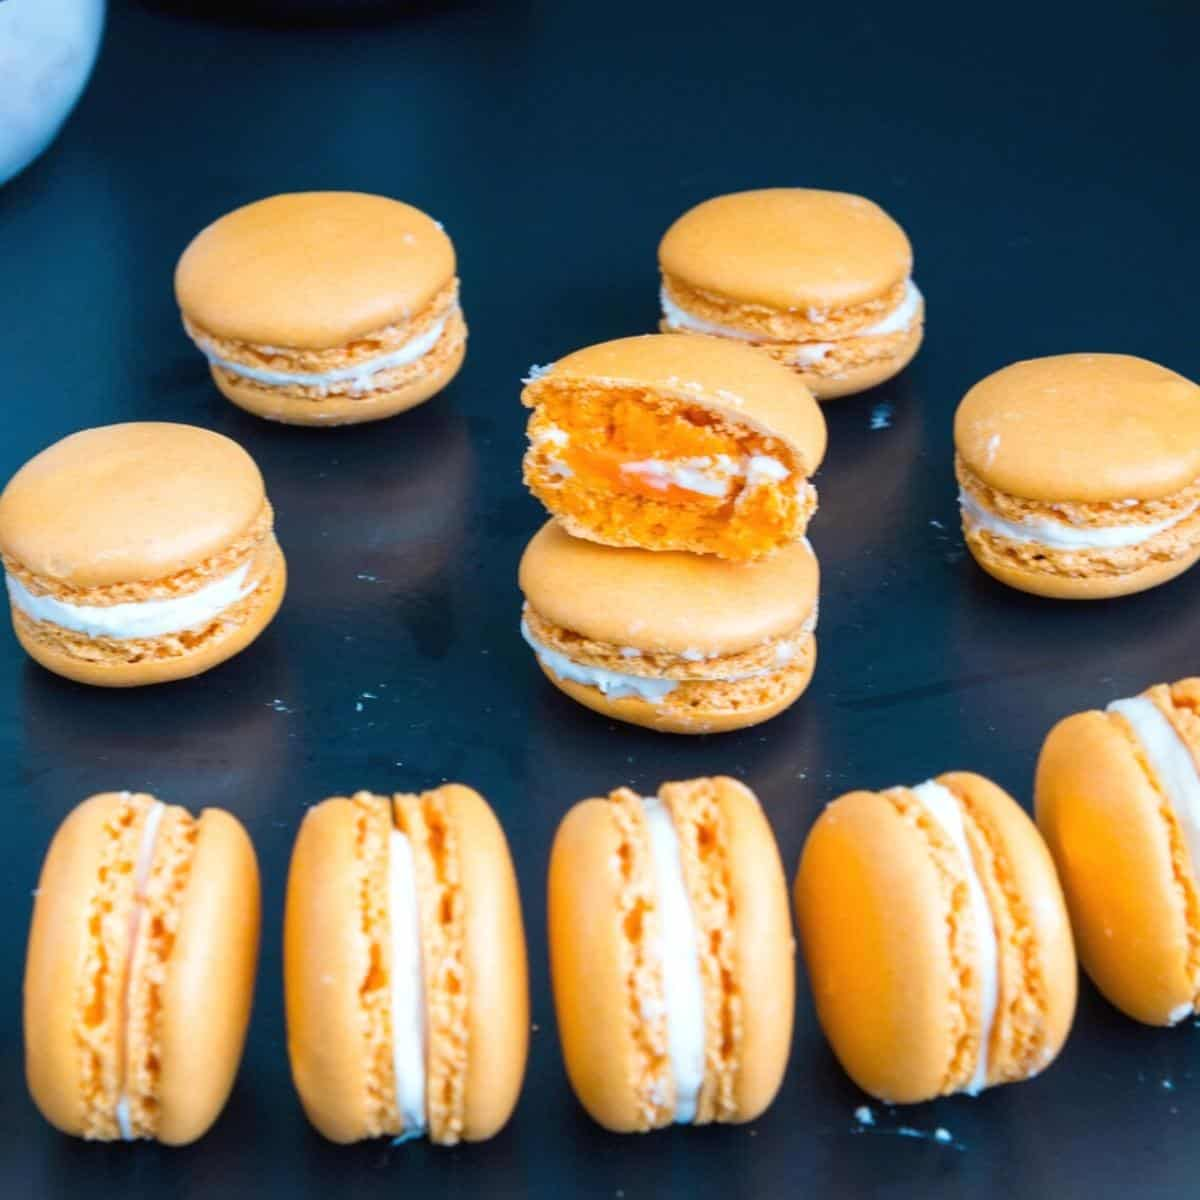 Macarons on a black table